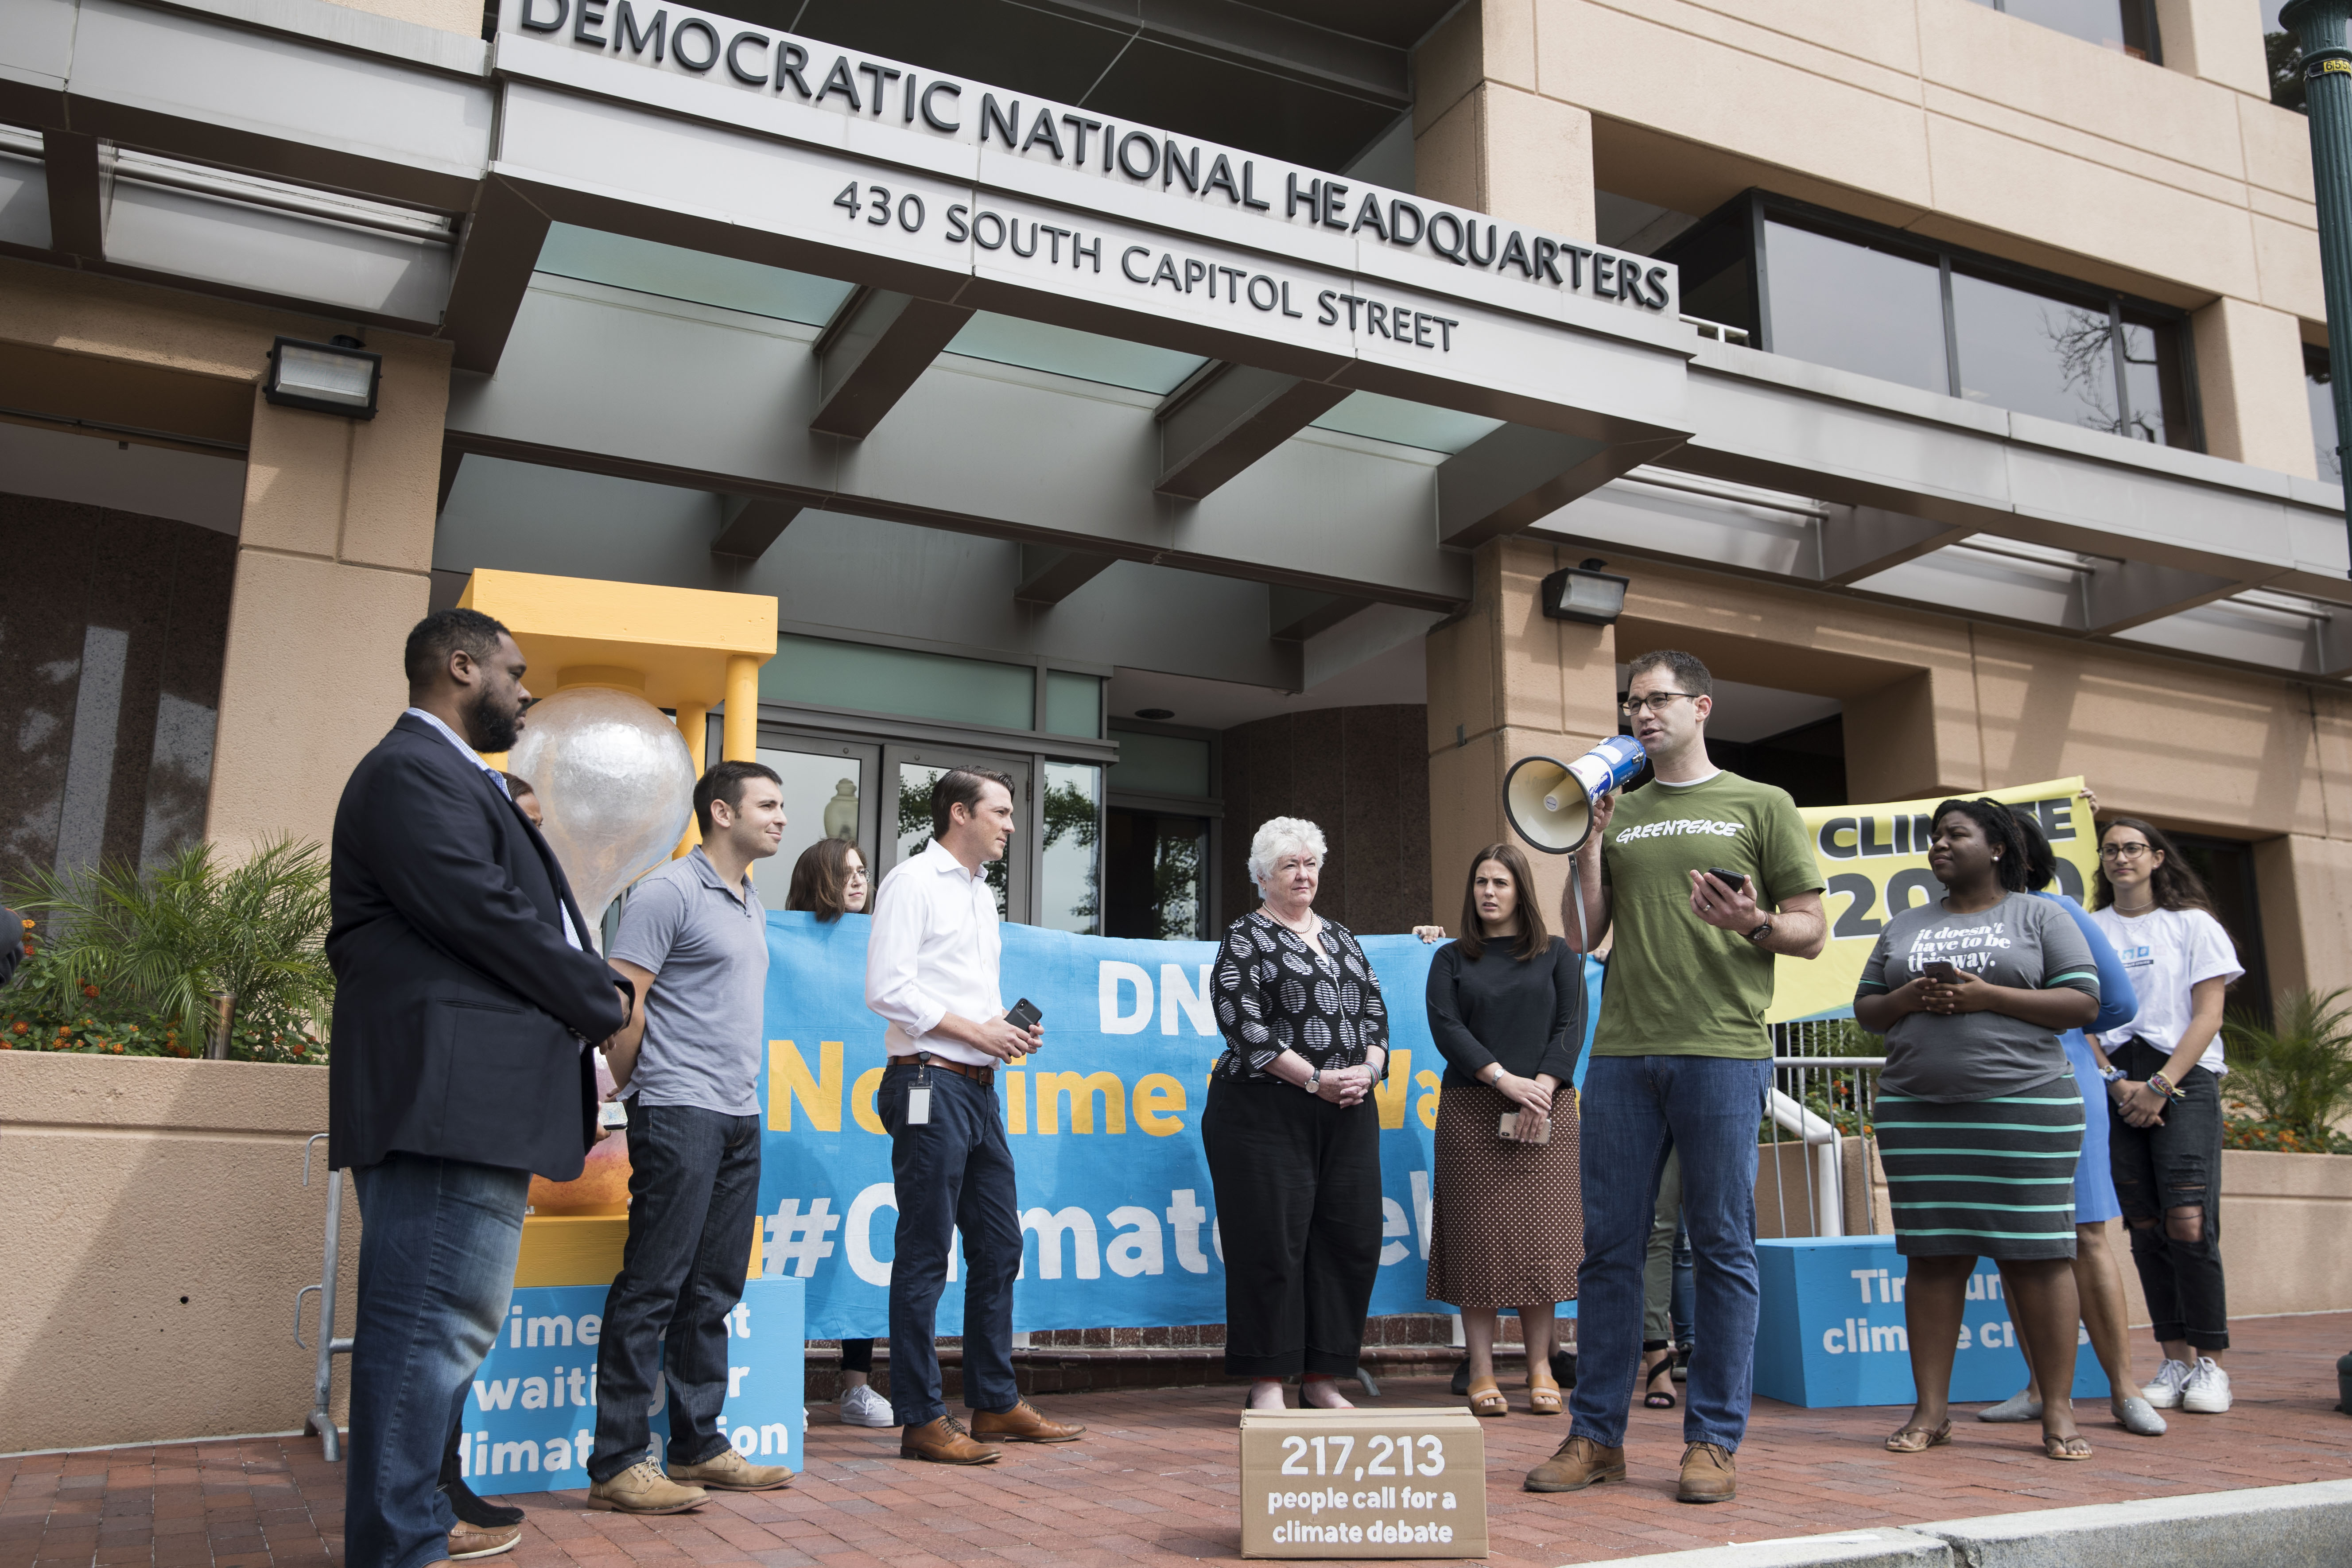 Jack Shapiro speaks in front of the Democratic National Committee headquarters, during a Greenpeace rally to call for a presidential campaign climate debate on June 12, 2019 in Washington, DC.